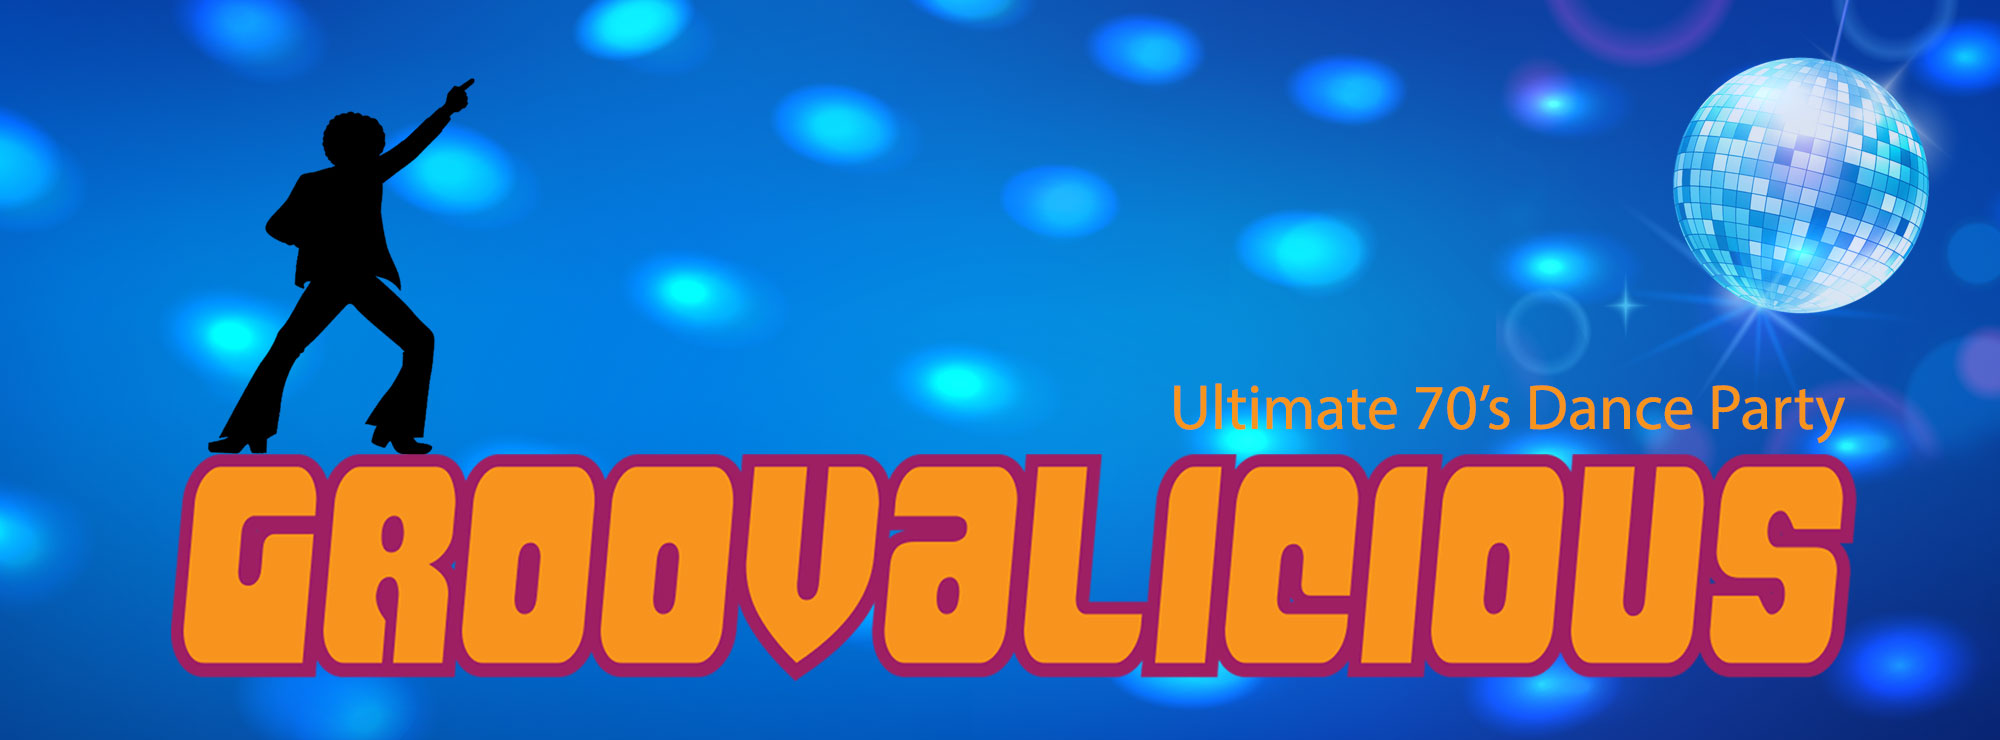 Groovalicious – Ultimate 70s Dance Party